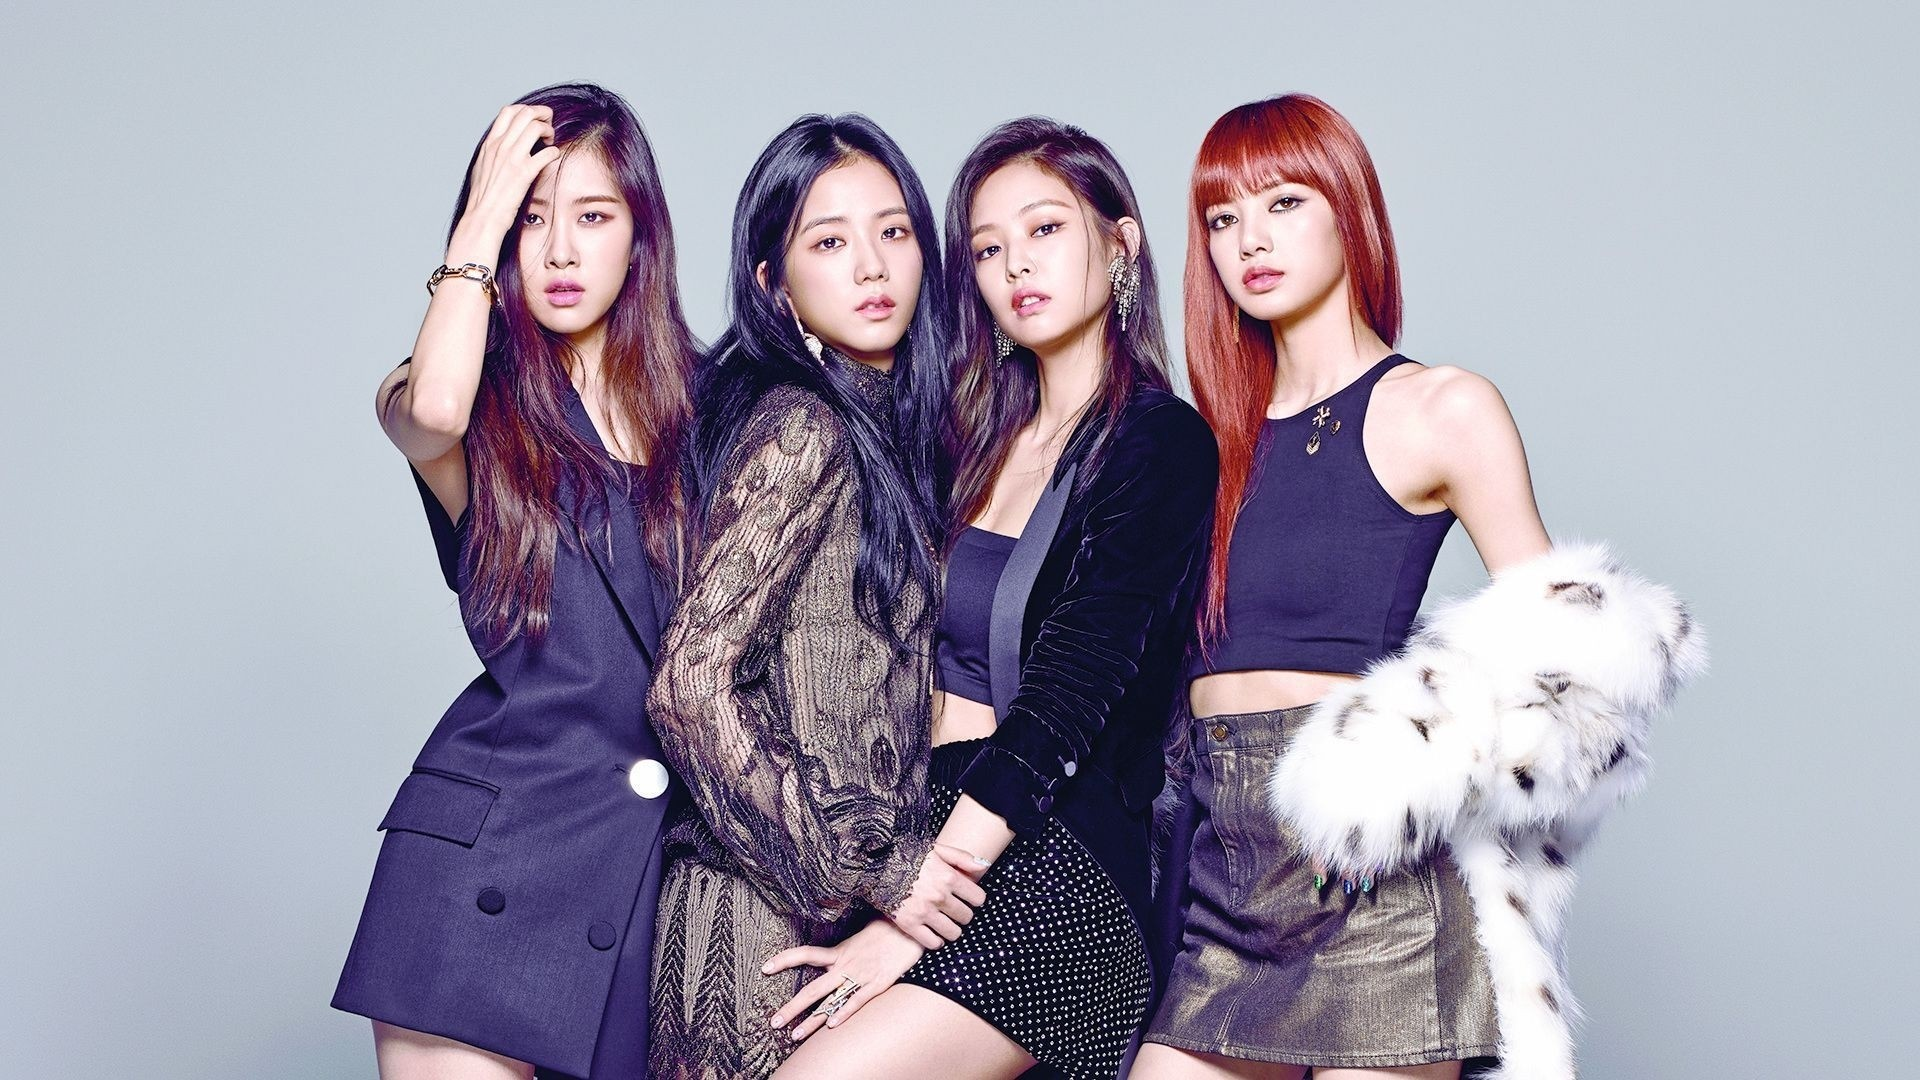 Blackpink Wallpaper for pc